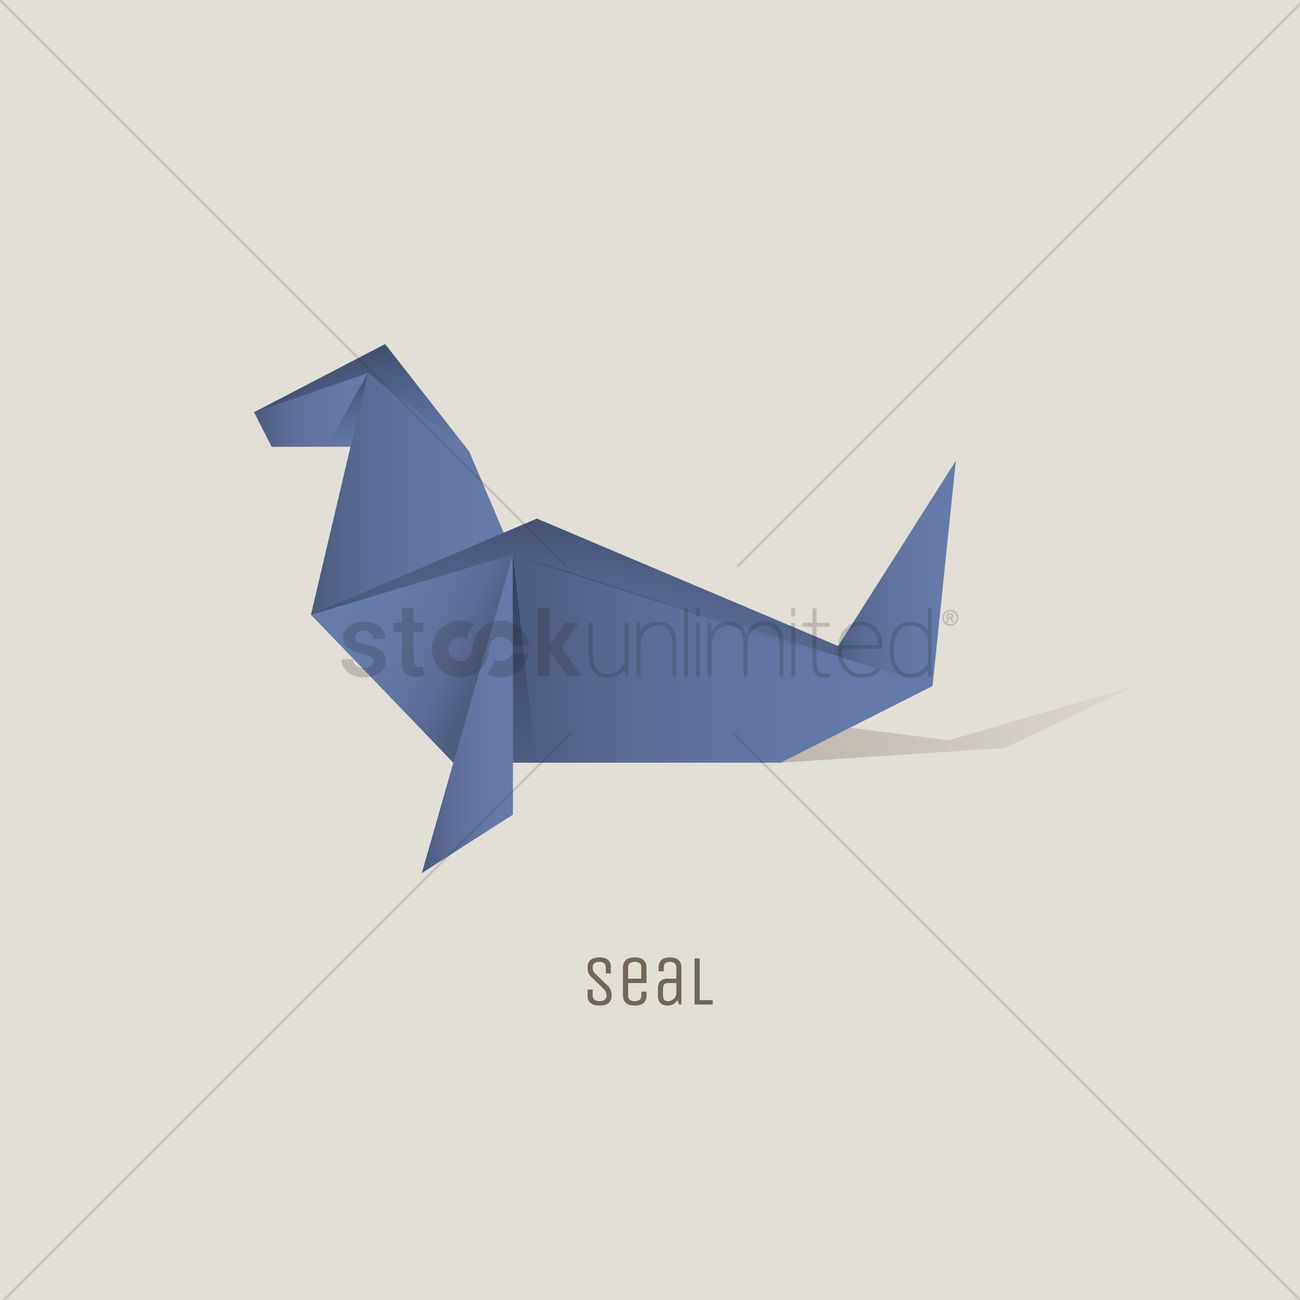 Origami seal vector image 1817831 stockunlimited origami seal vector graphic jeuxipadfo Gallery